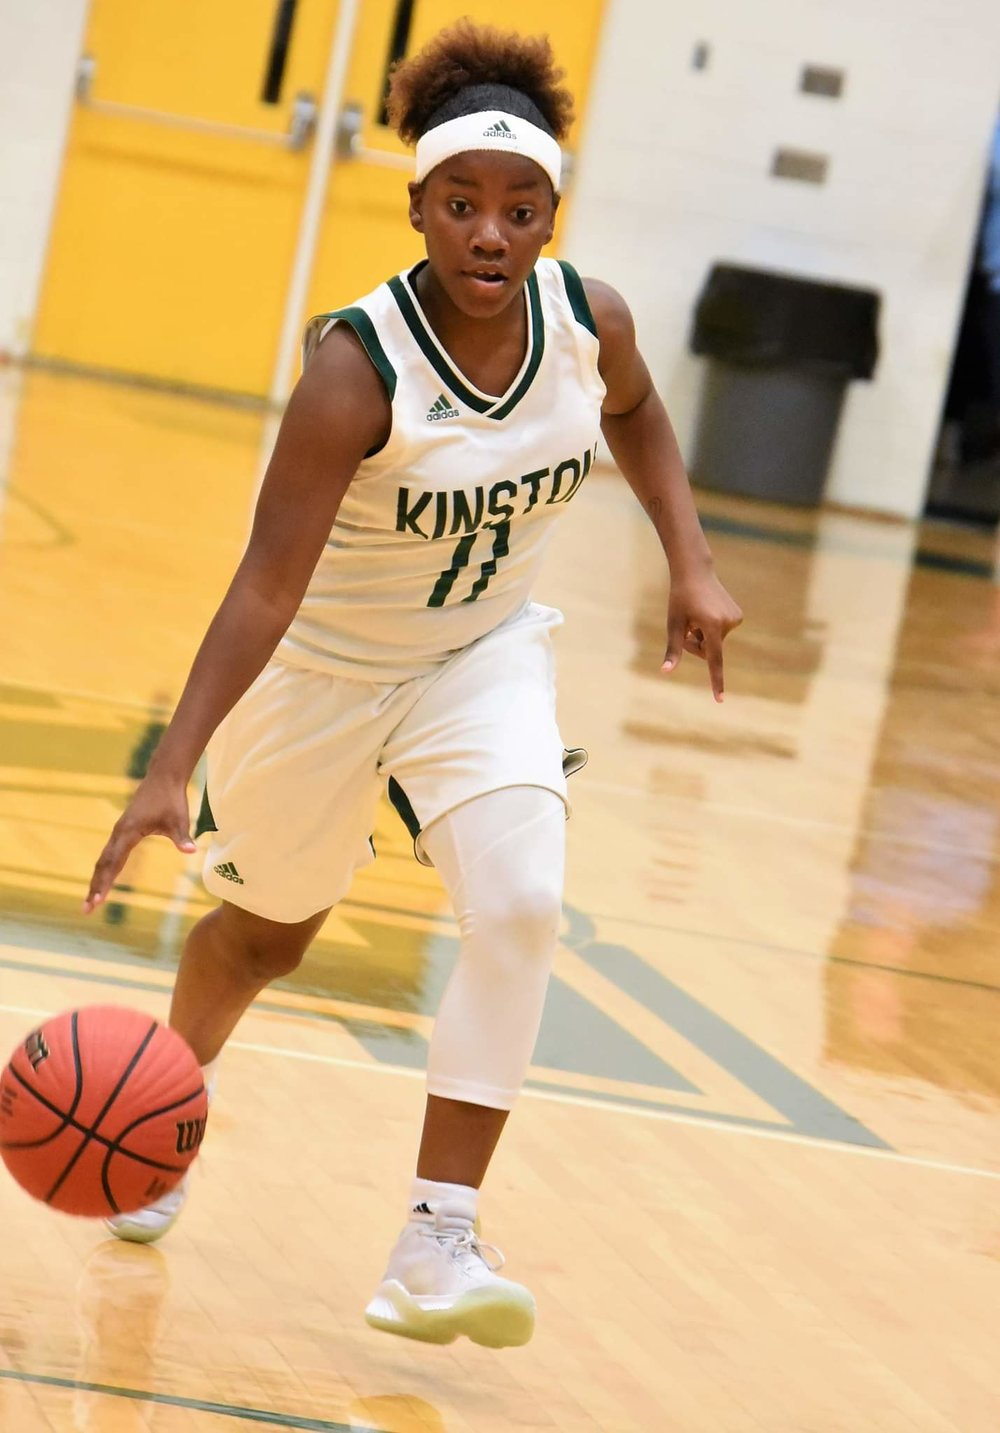 """Kinston's Michyla Dove scored a game-high 17 points in the Vikings' win over Eastern Wayne. Photo by William """"Bud"""" Hardy / Neuse News"""